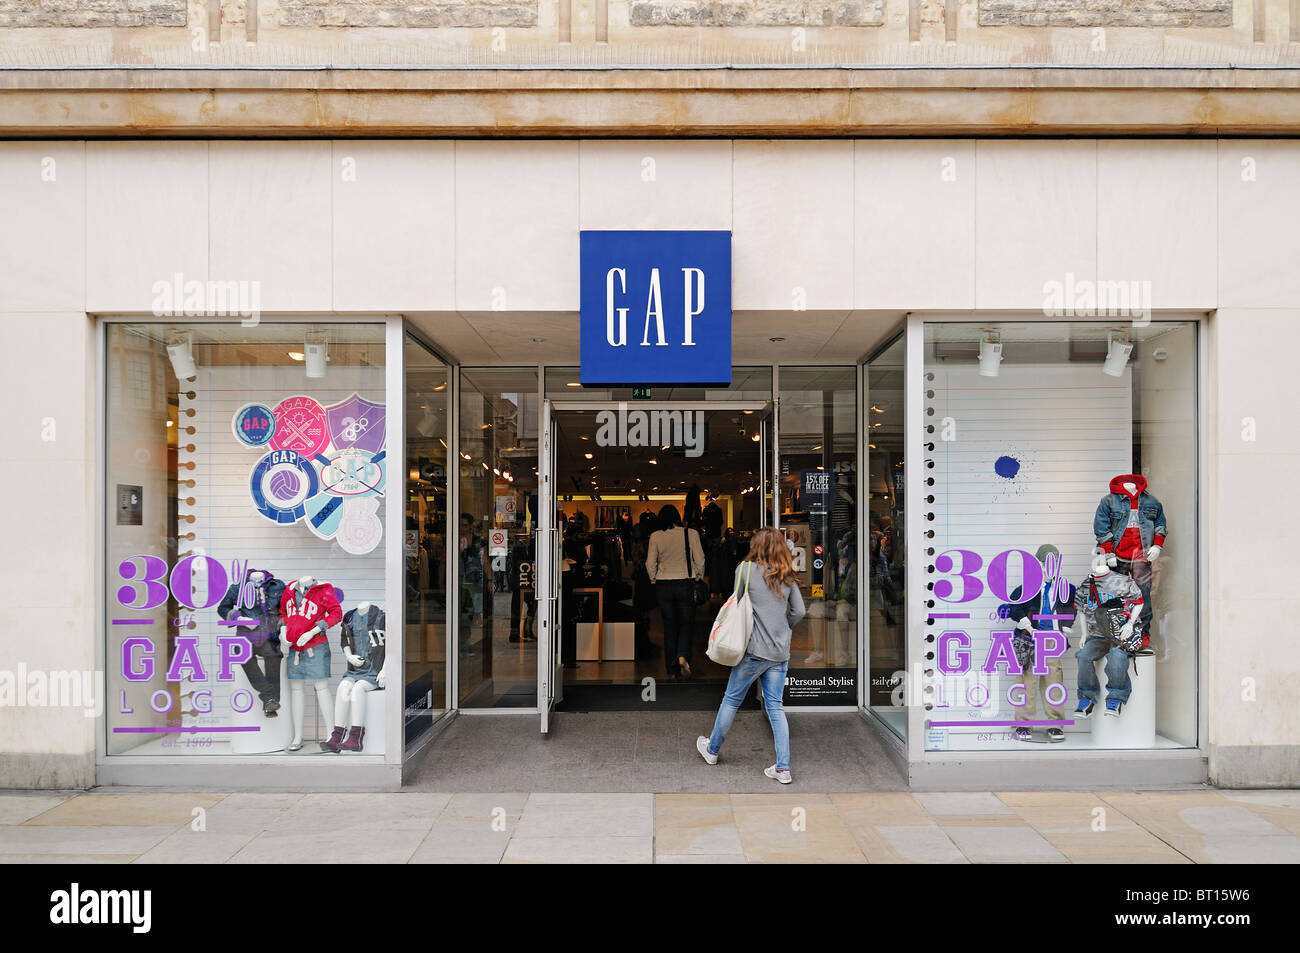 GAP Shop, Oxford, UK. - Stock Image